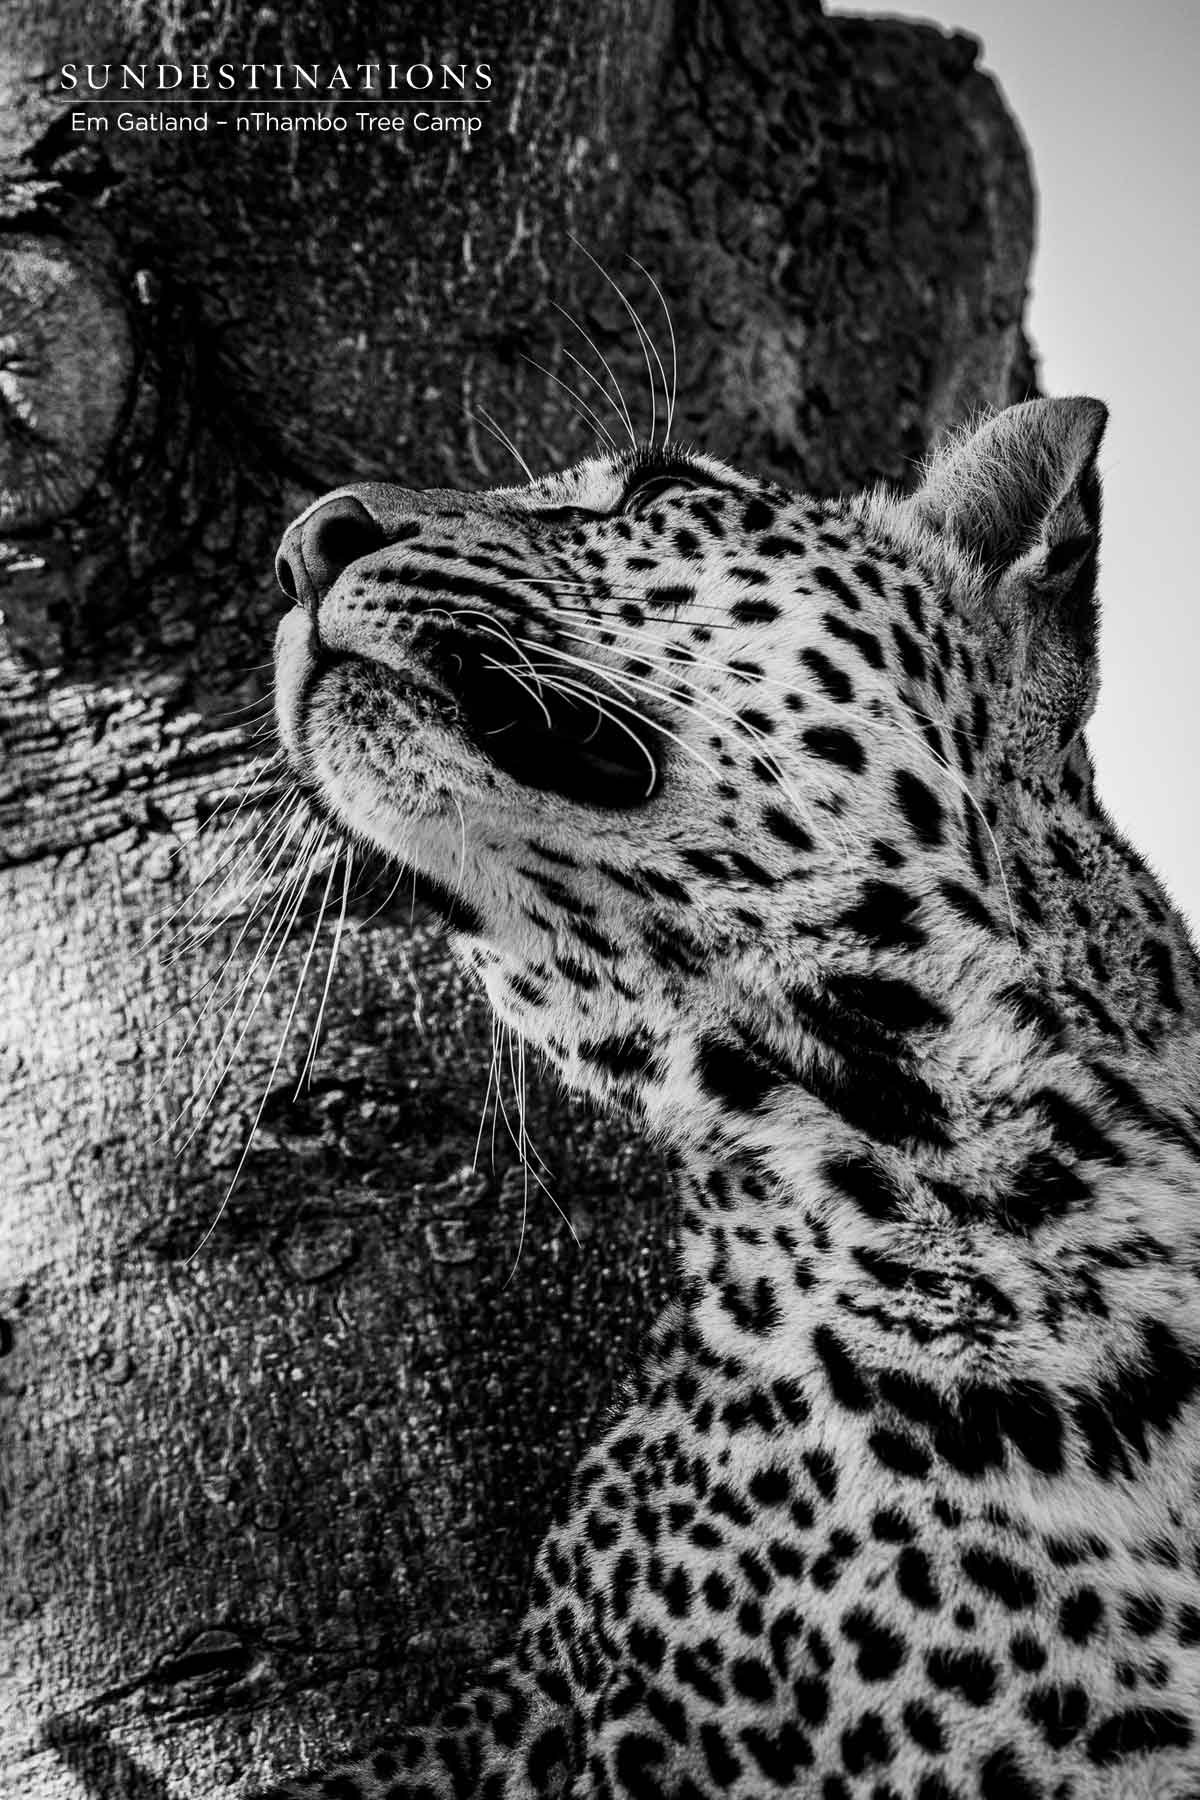 Leopards at nThambo Tree Camp